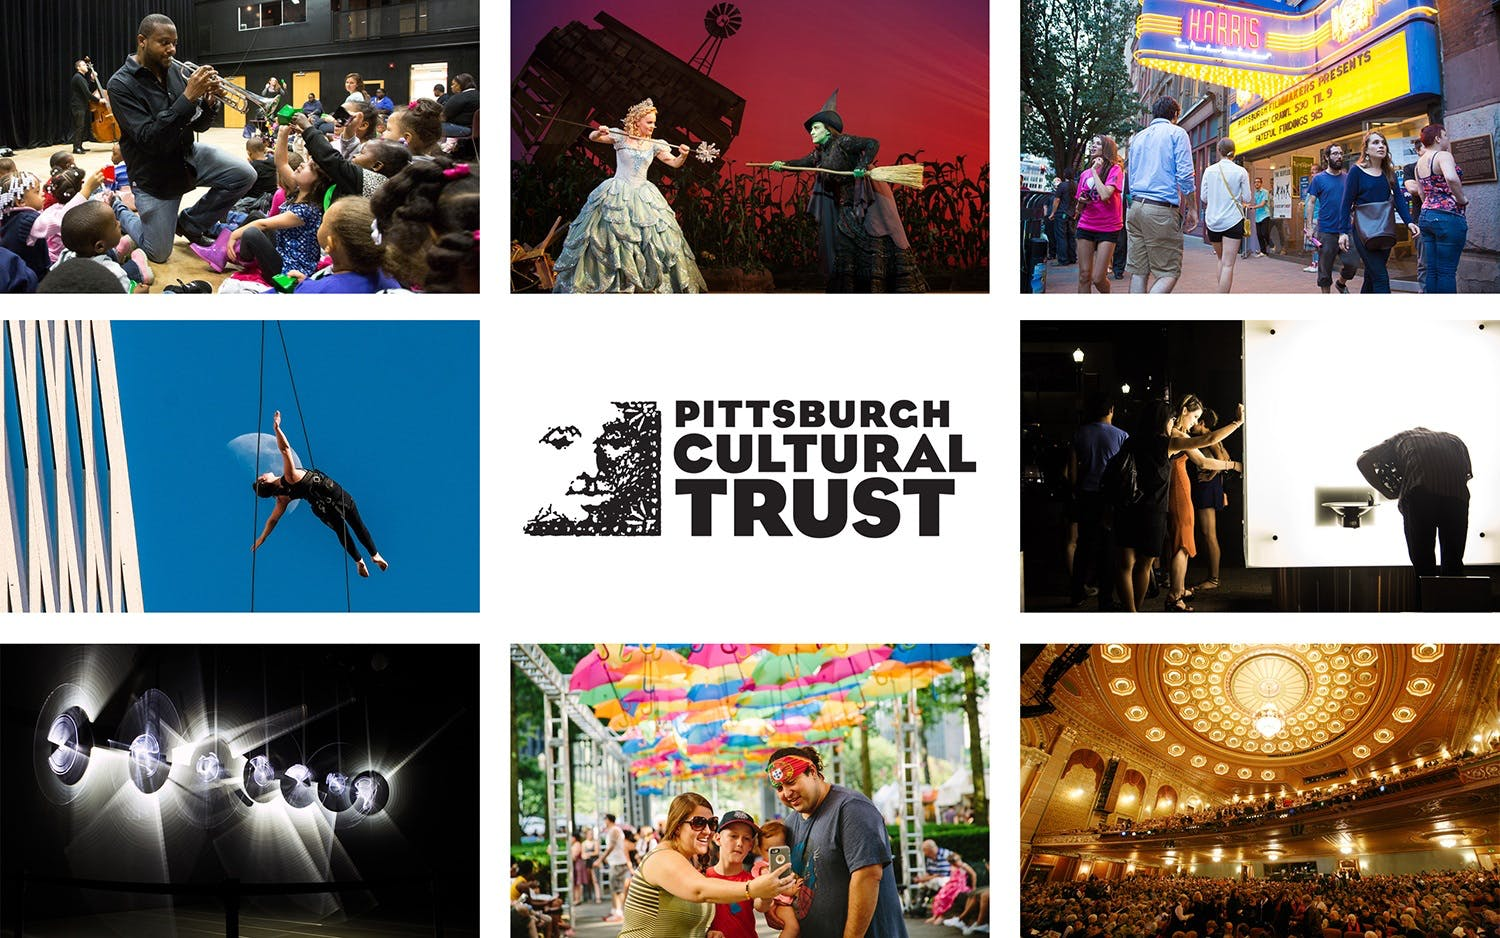 The Pittsburgh Cultural Trust logo surrounded by 8 photos of Trust-related activities. The photos feature a man playing the trumpet, a production of the Wizard of Oz, an aerialist, and people approaching a box office.